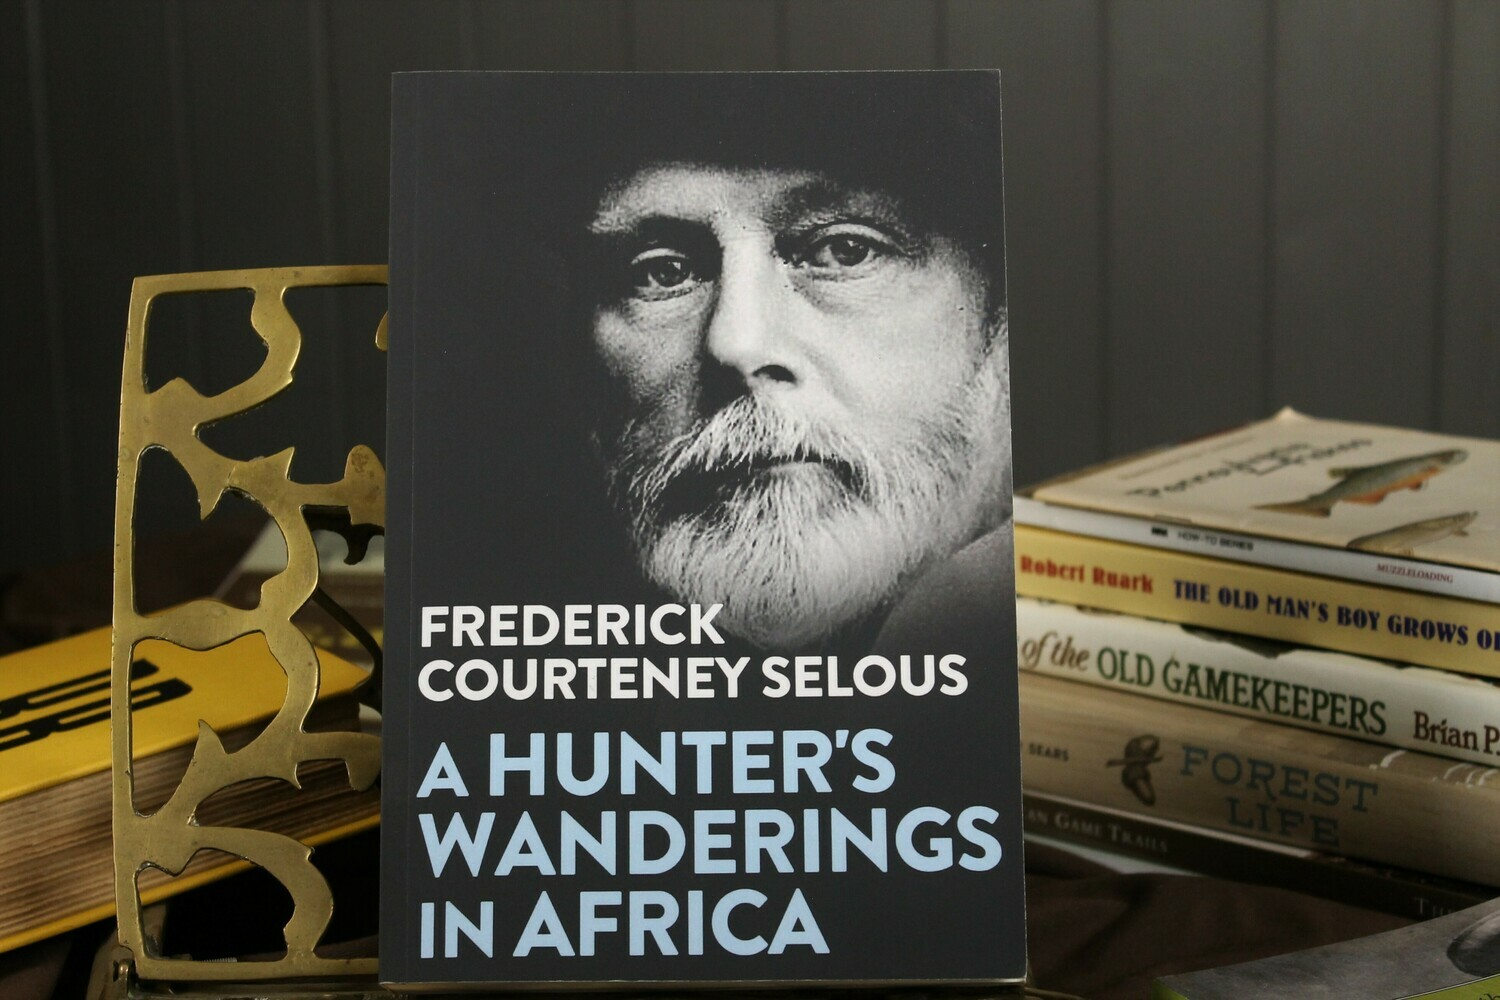 A Hunter's Wanderings in Africa by Frederick Courteny Selous